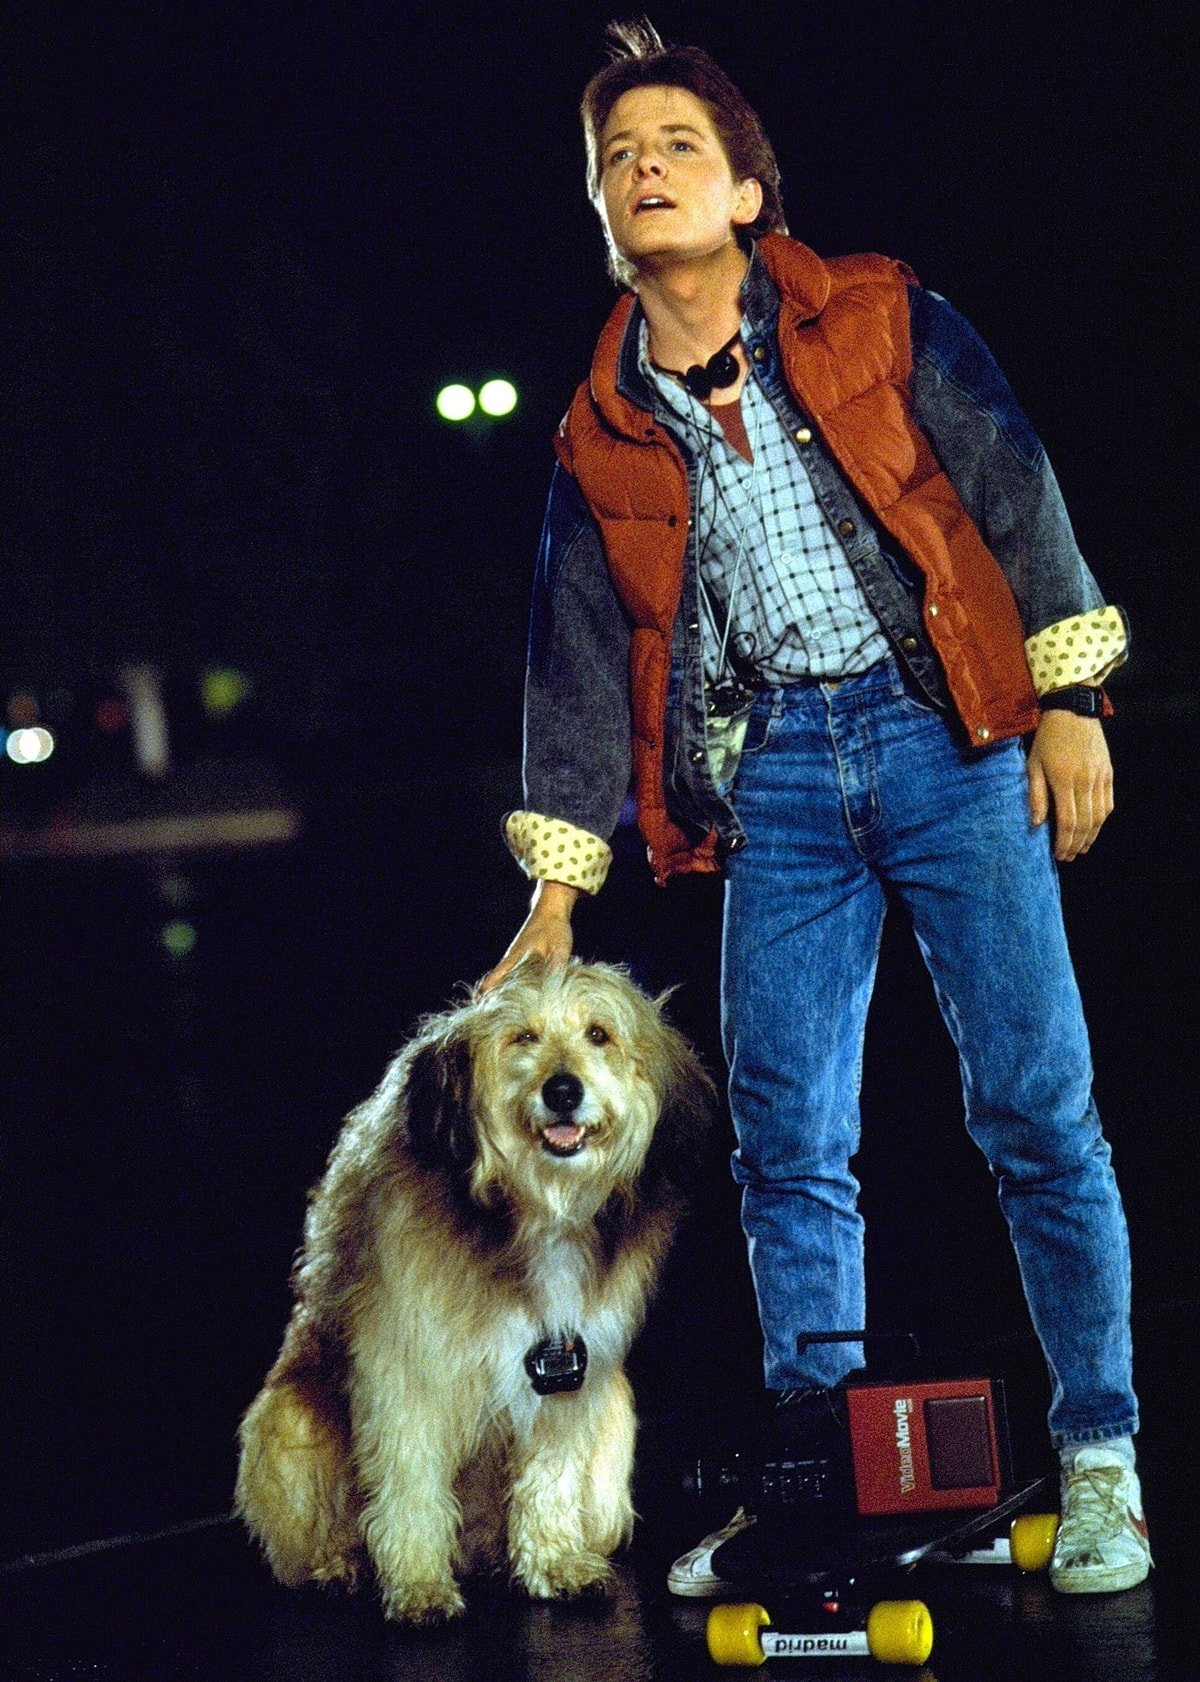 Michael J. Fox as Marty McFly wears blue Guess jeans with white Nike Bruin shoes and a down vest for the 1985 American science fiction film Back to the Future